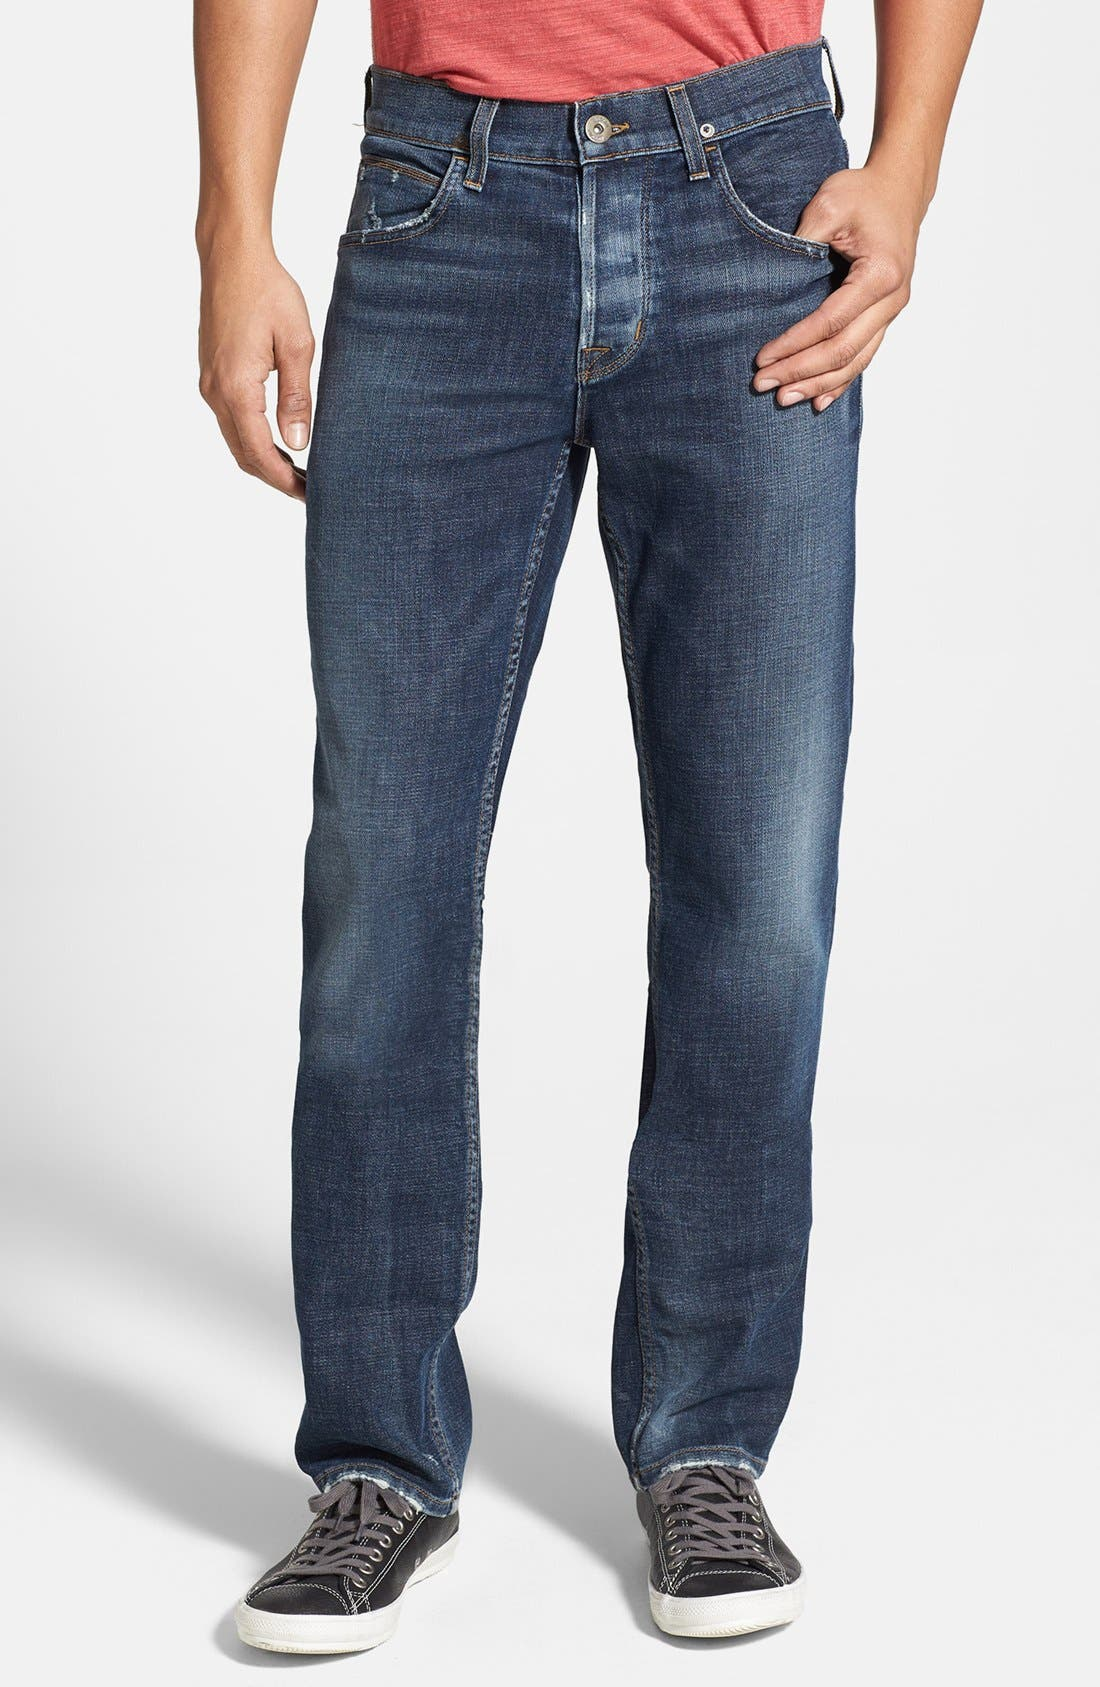 Alternate Image 1 Selected - Hudson Jeans 'Byron' Straight Leg Jeans (Thieves)